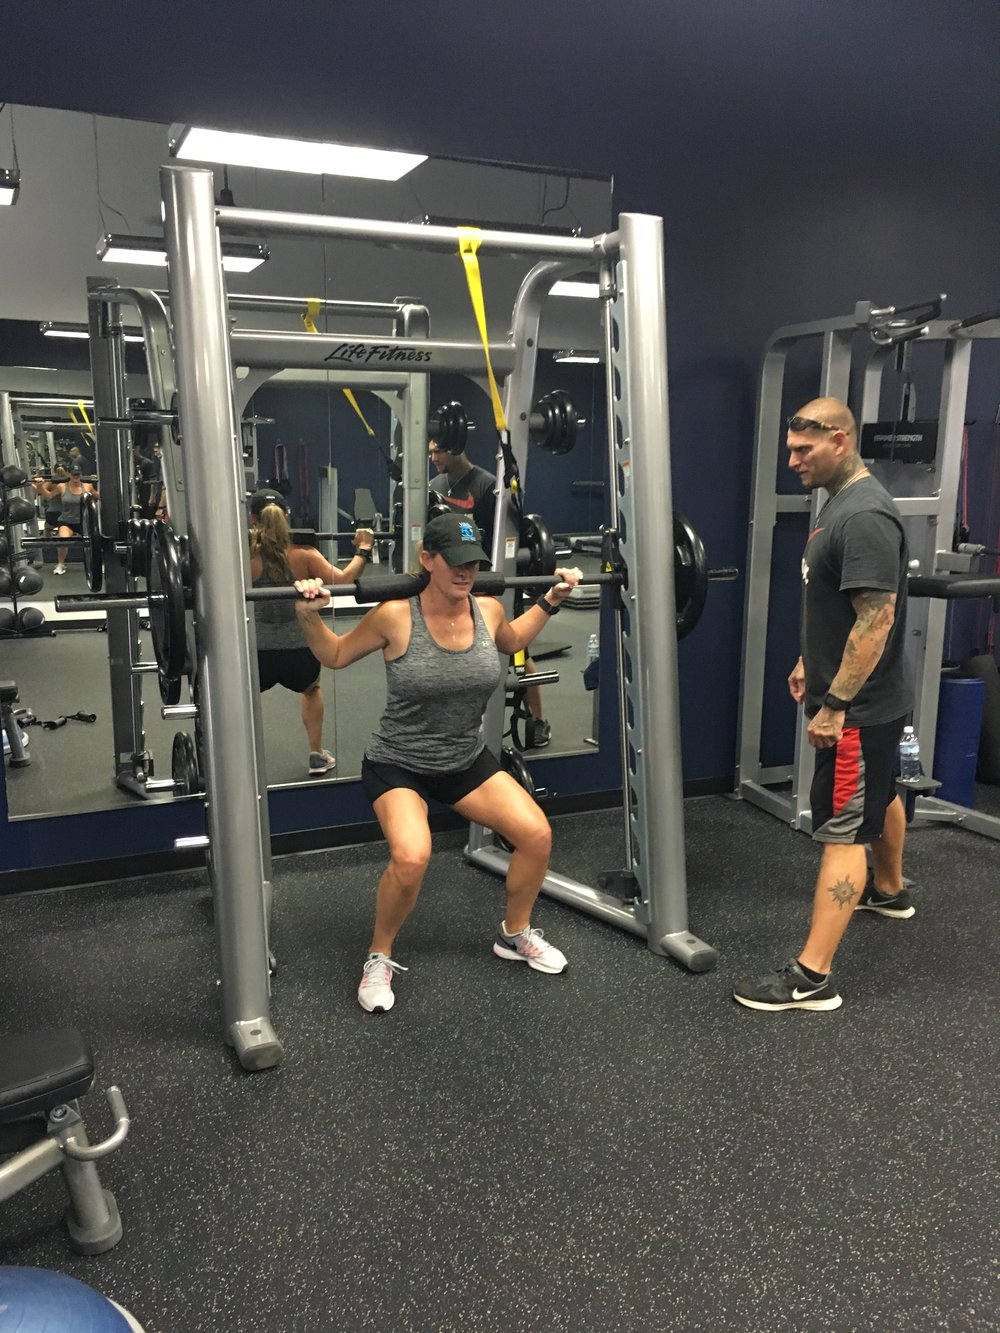 Fitness Equipment Workouts, Plano Texas